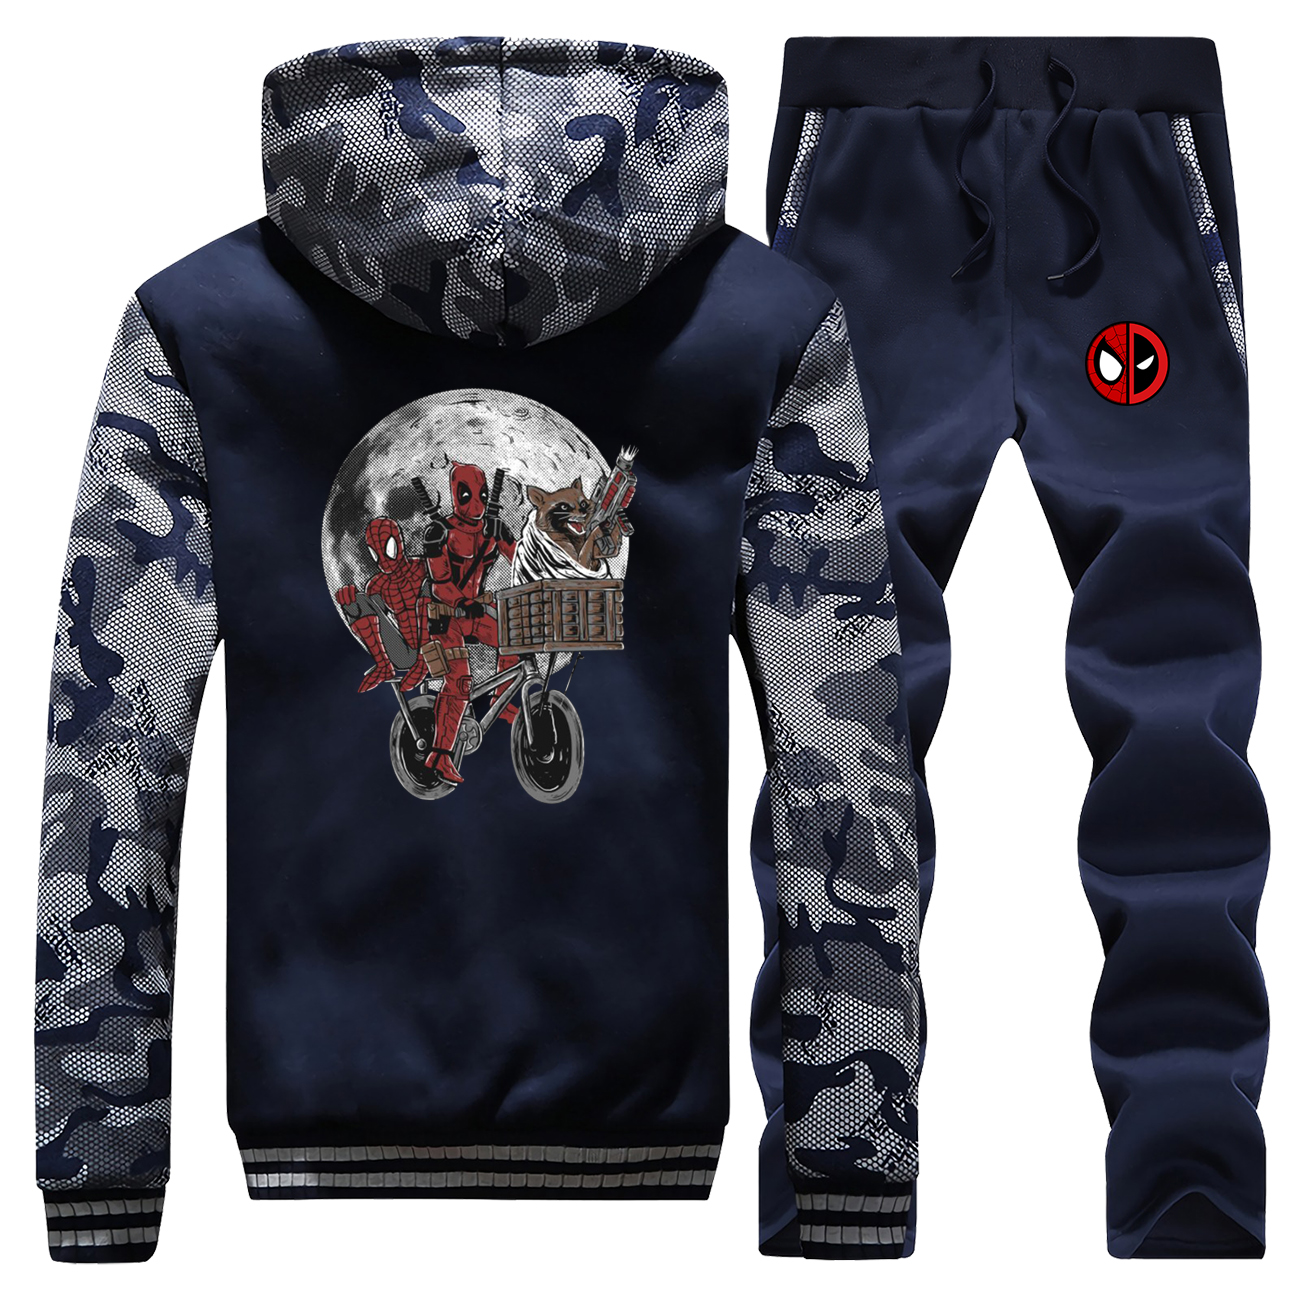 Deadpool Funny Desgin Camo Male Set Spider-Man Print Thick Jackets E T Fleece Warm Pants Sweatshirts Fitness Hip Hop Sweatsuit